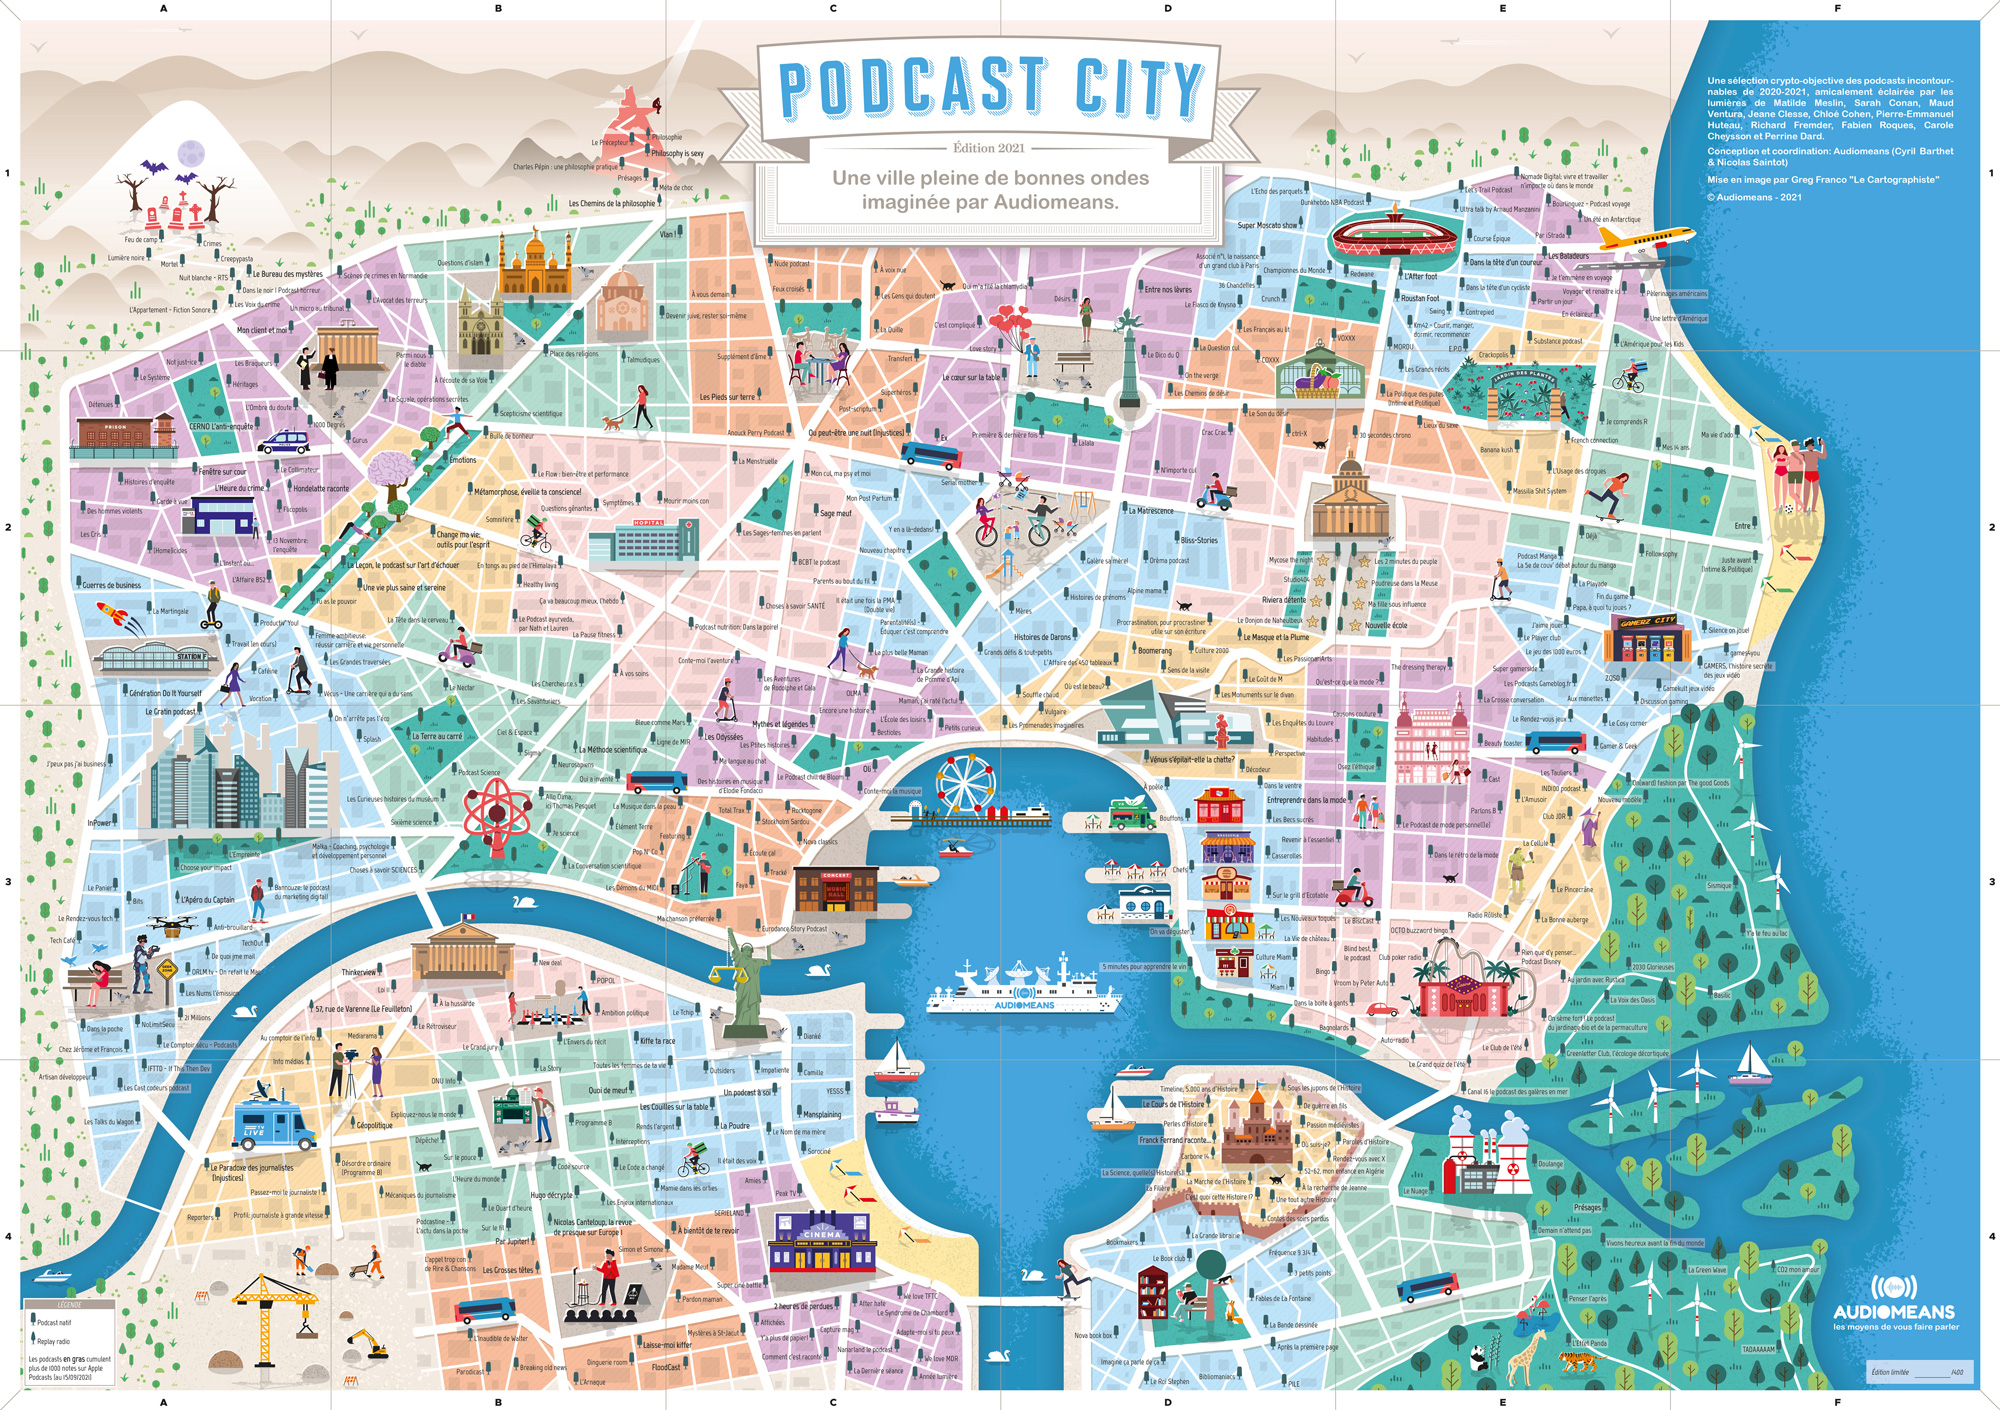 Podcast City full view